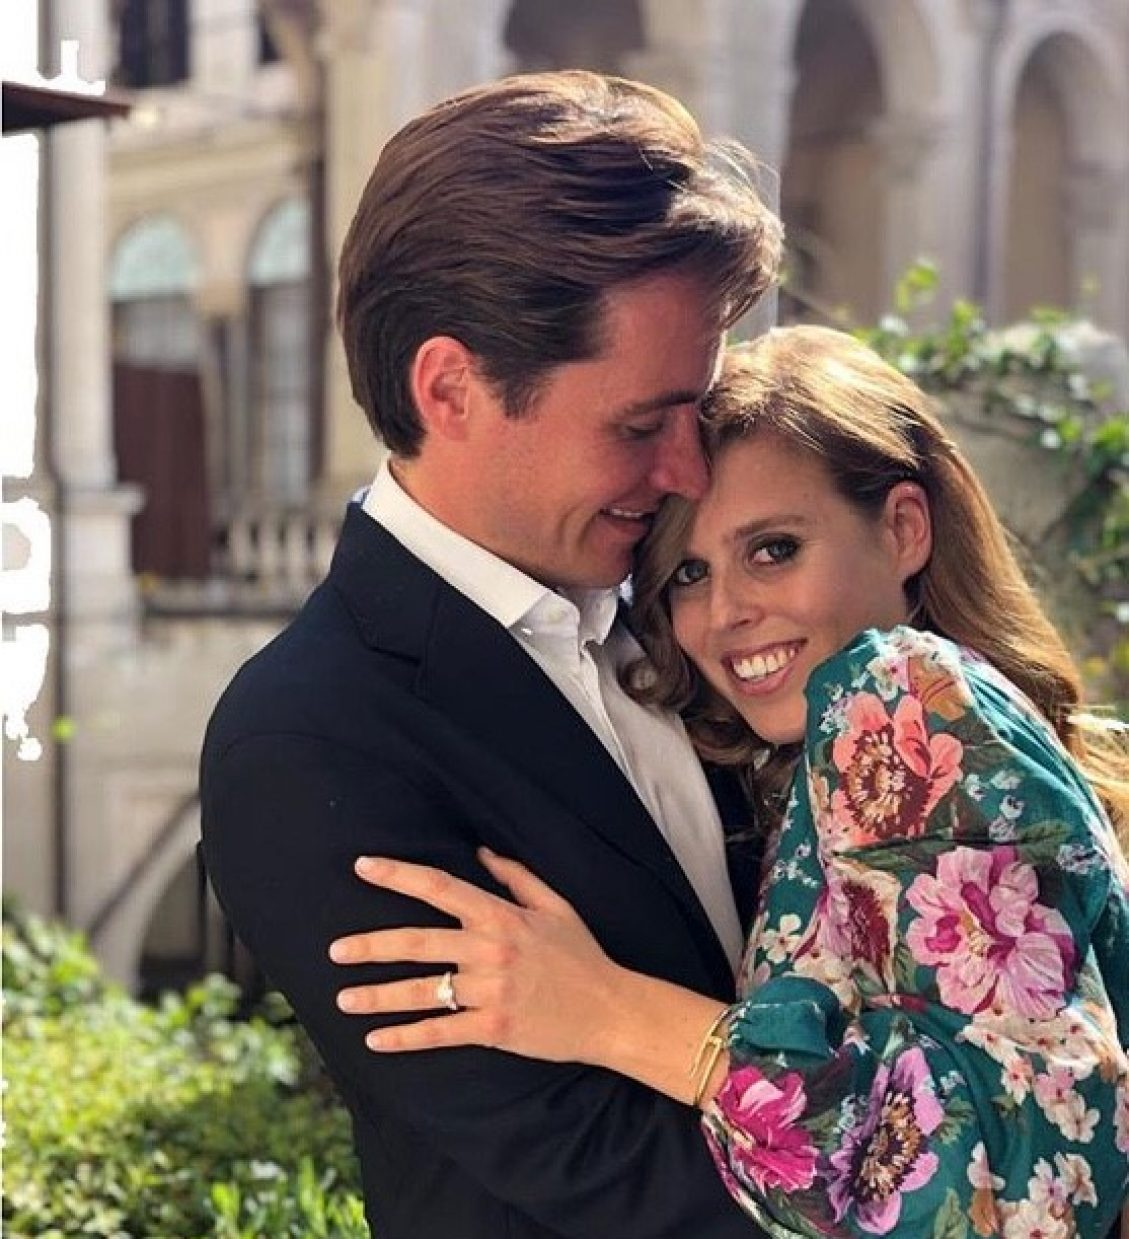 Princess Beatrice of York Engaged to Edoardo Mozzi - Shaun Leane Bespoke Diamond Engagement Ring